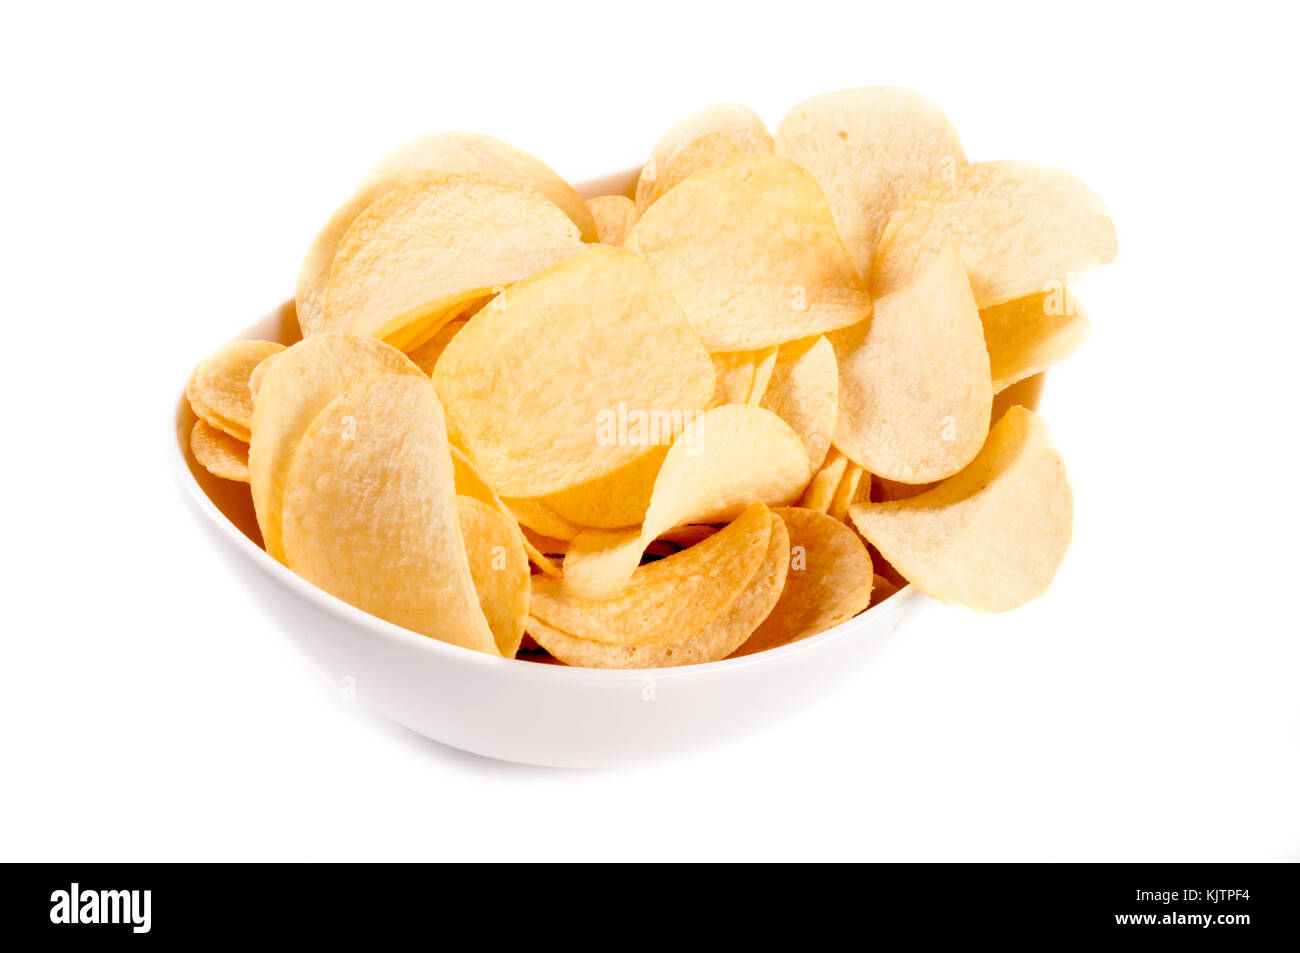 Potato chip in the cup isolated on white background - Stock Image